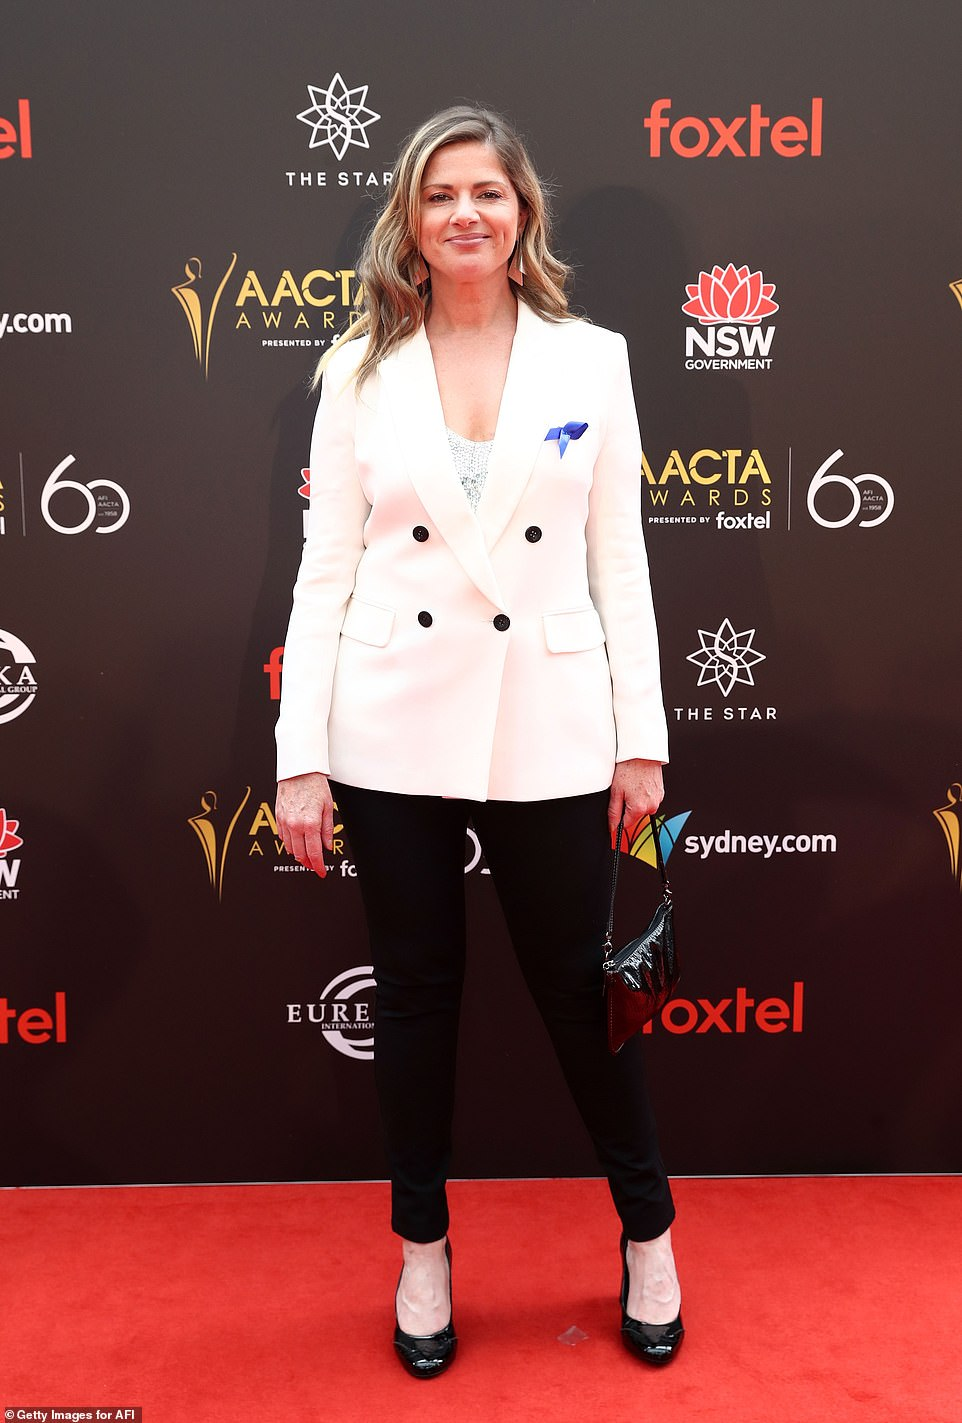 Monochrome chic! Media personality Julia Zemiro wore a white blazer paired with skinny black pants and matching pumps